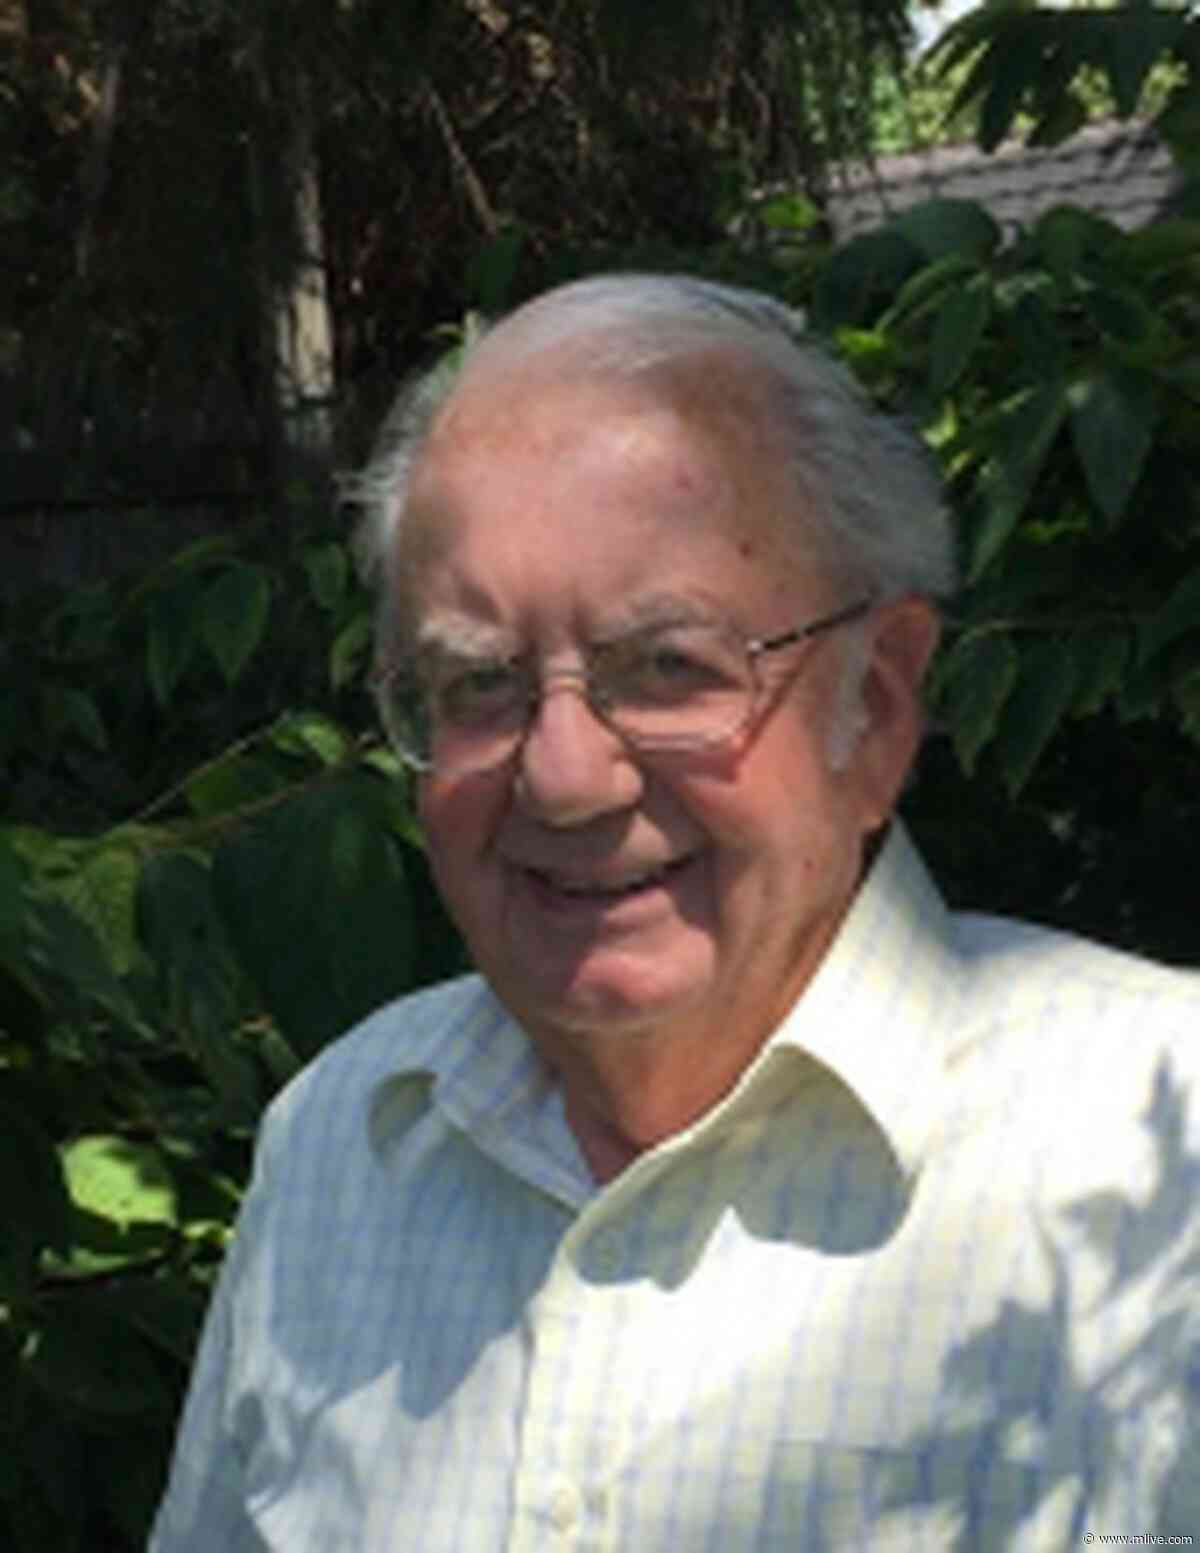 George Heron, former executive director of United Way of Bay County, dies at 82 - mlive.com